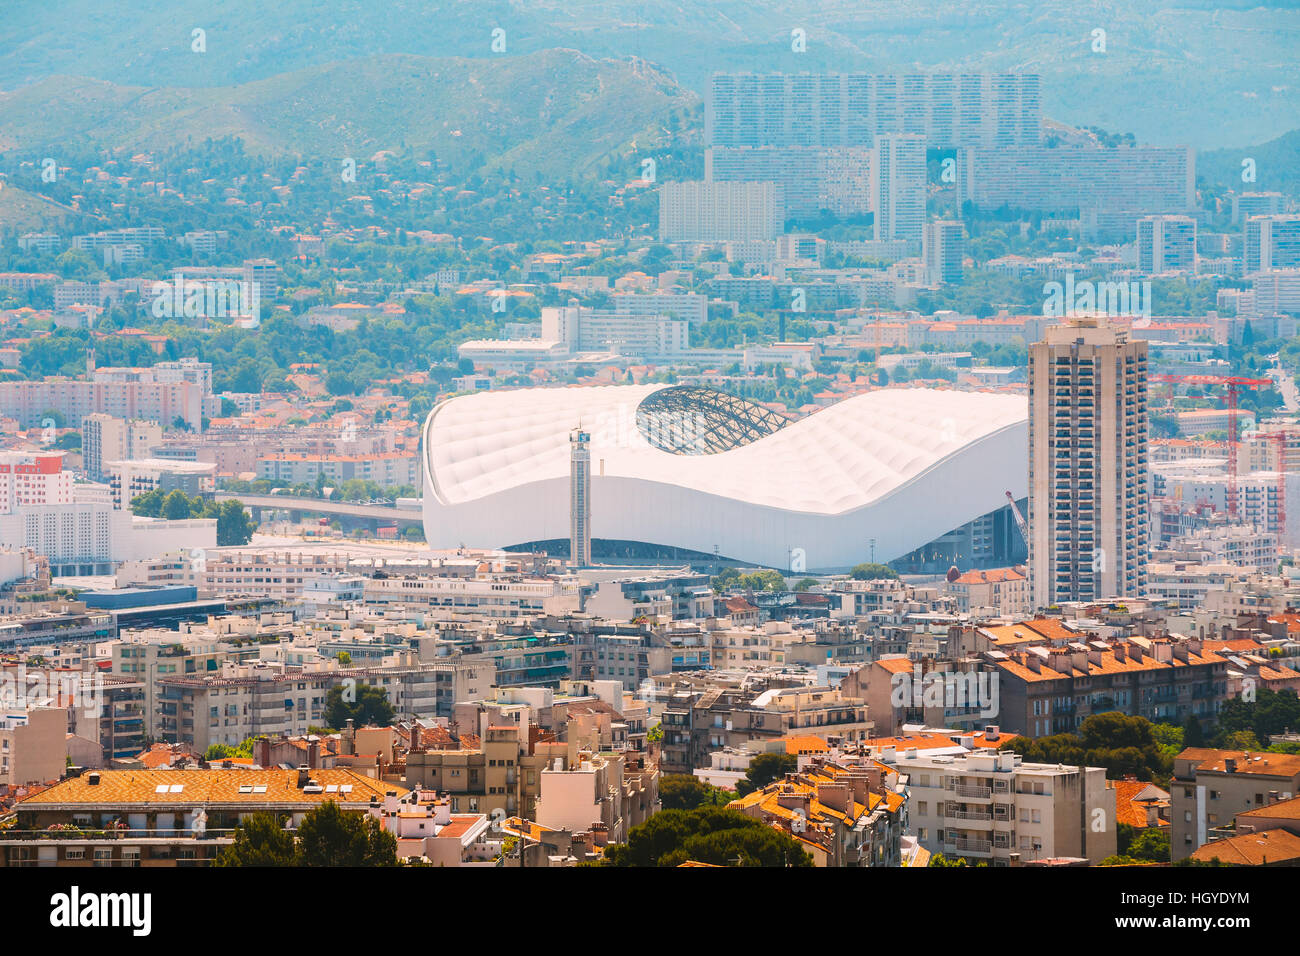 Cityscape of Marseille, France. Urban background with sport Velodrome stadium. Stade Velodrome. - Stock Image